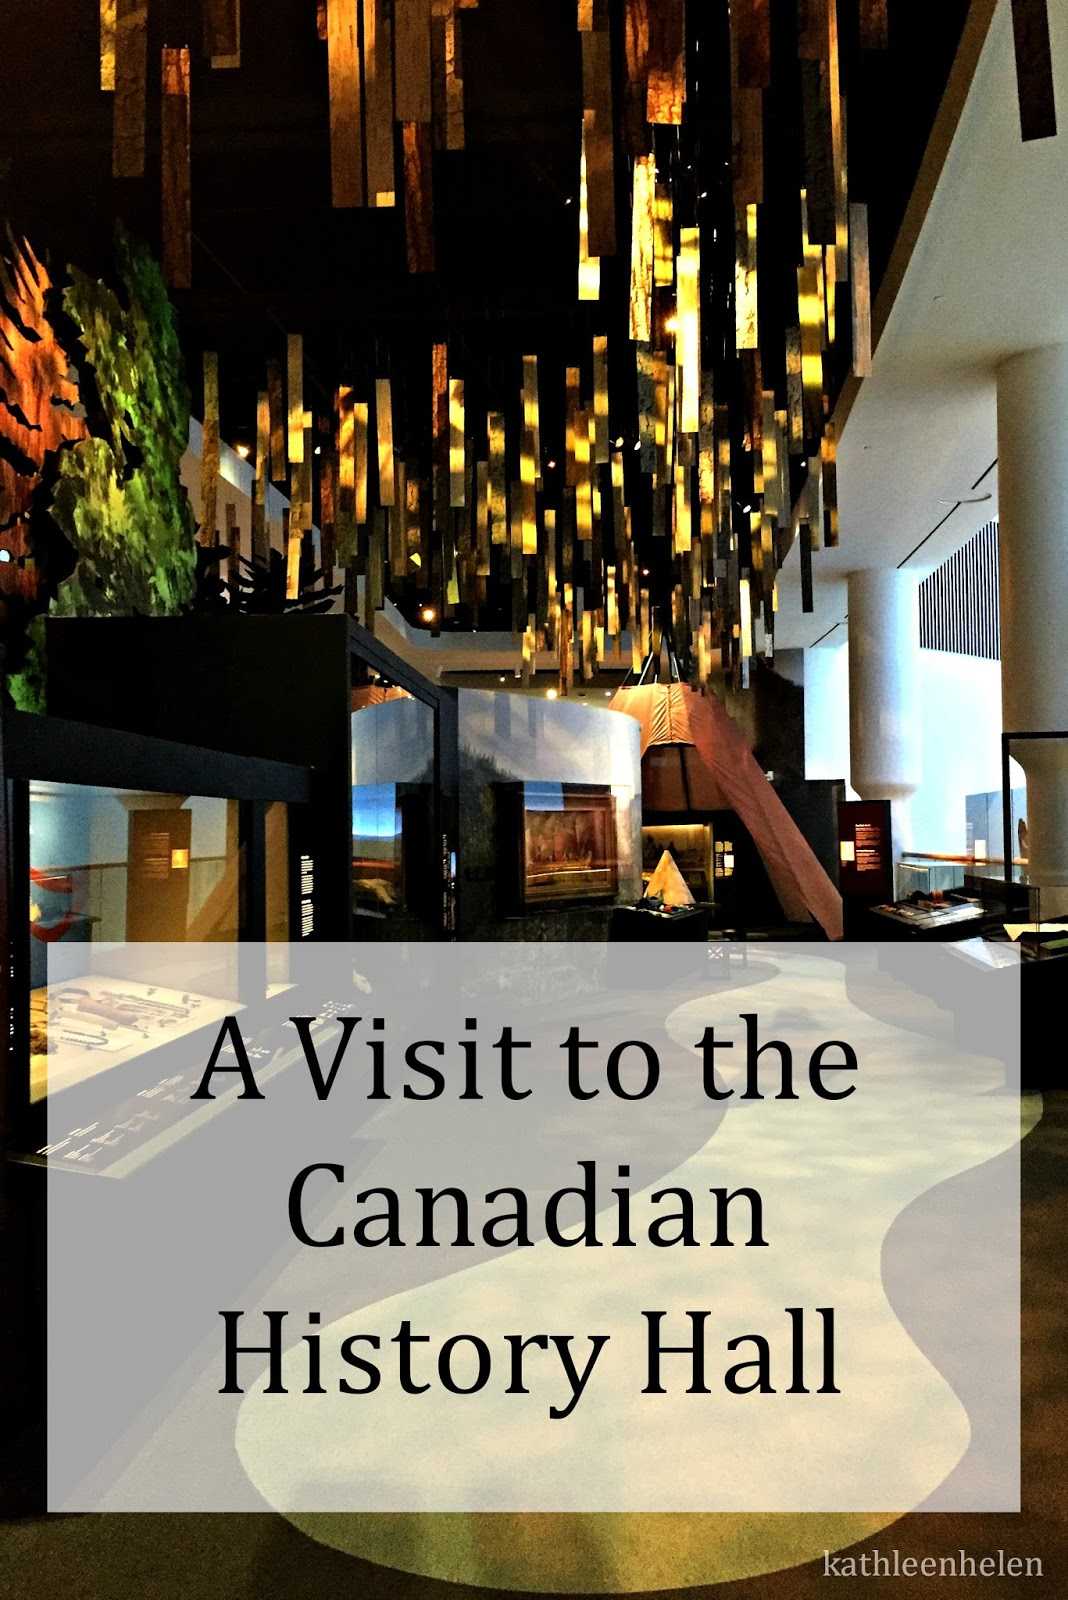 A Visit to the Canadian History Hall | kathleenhelen